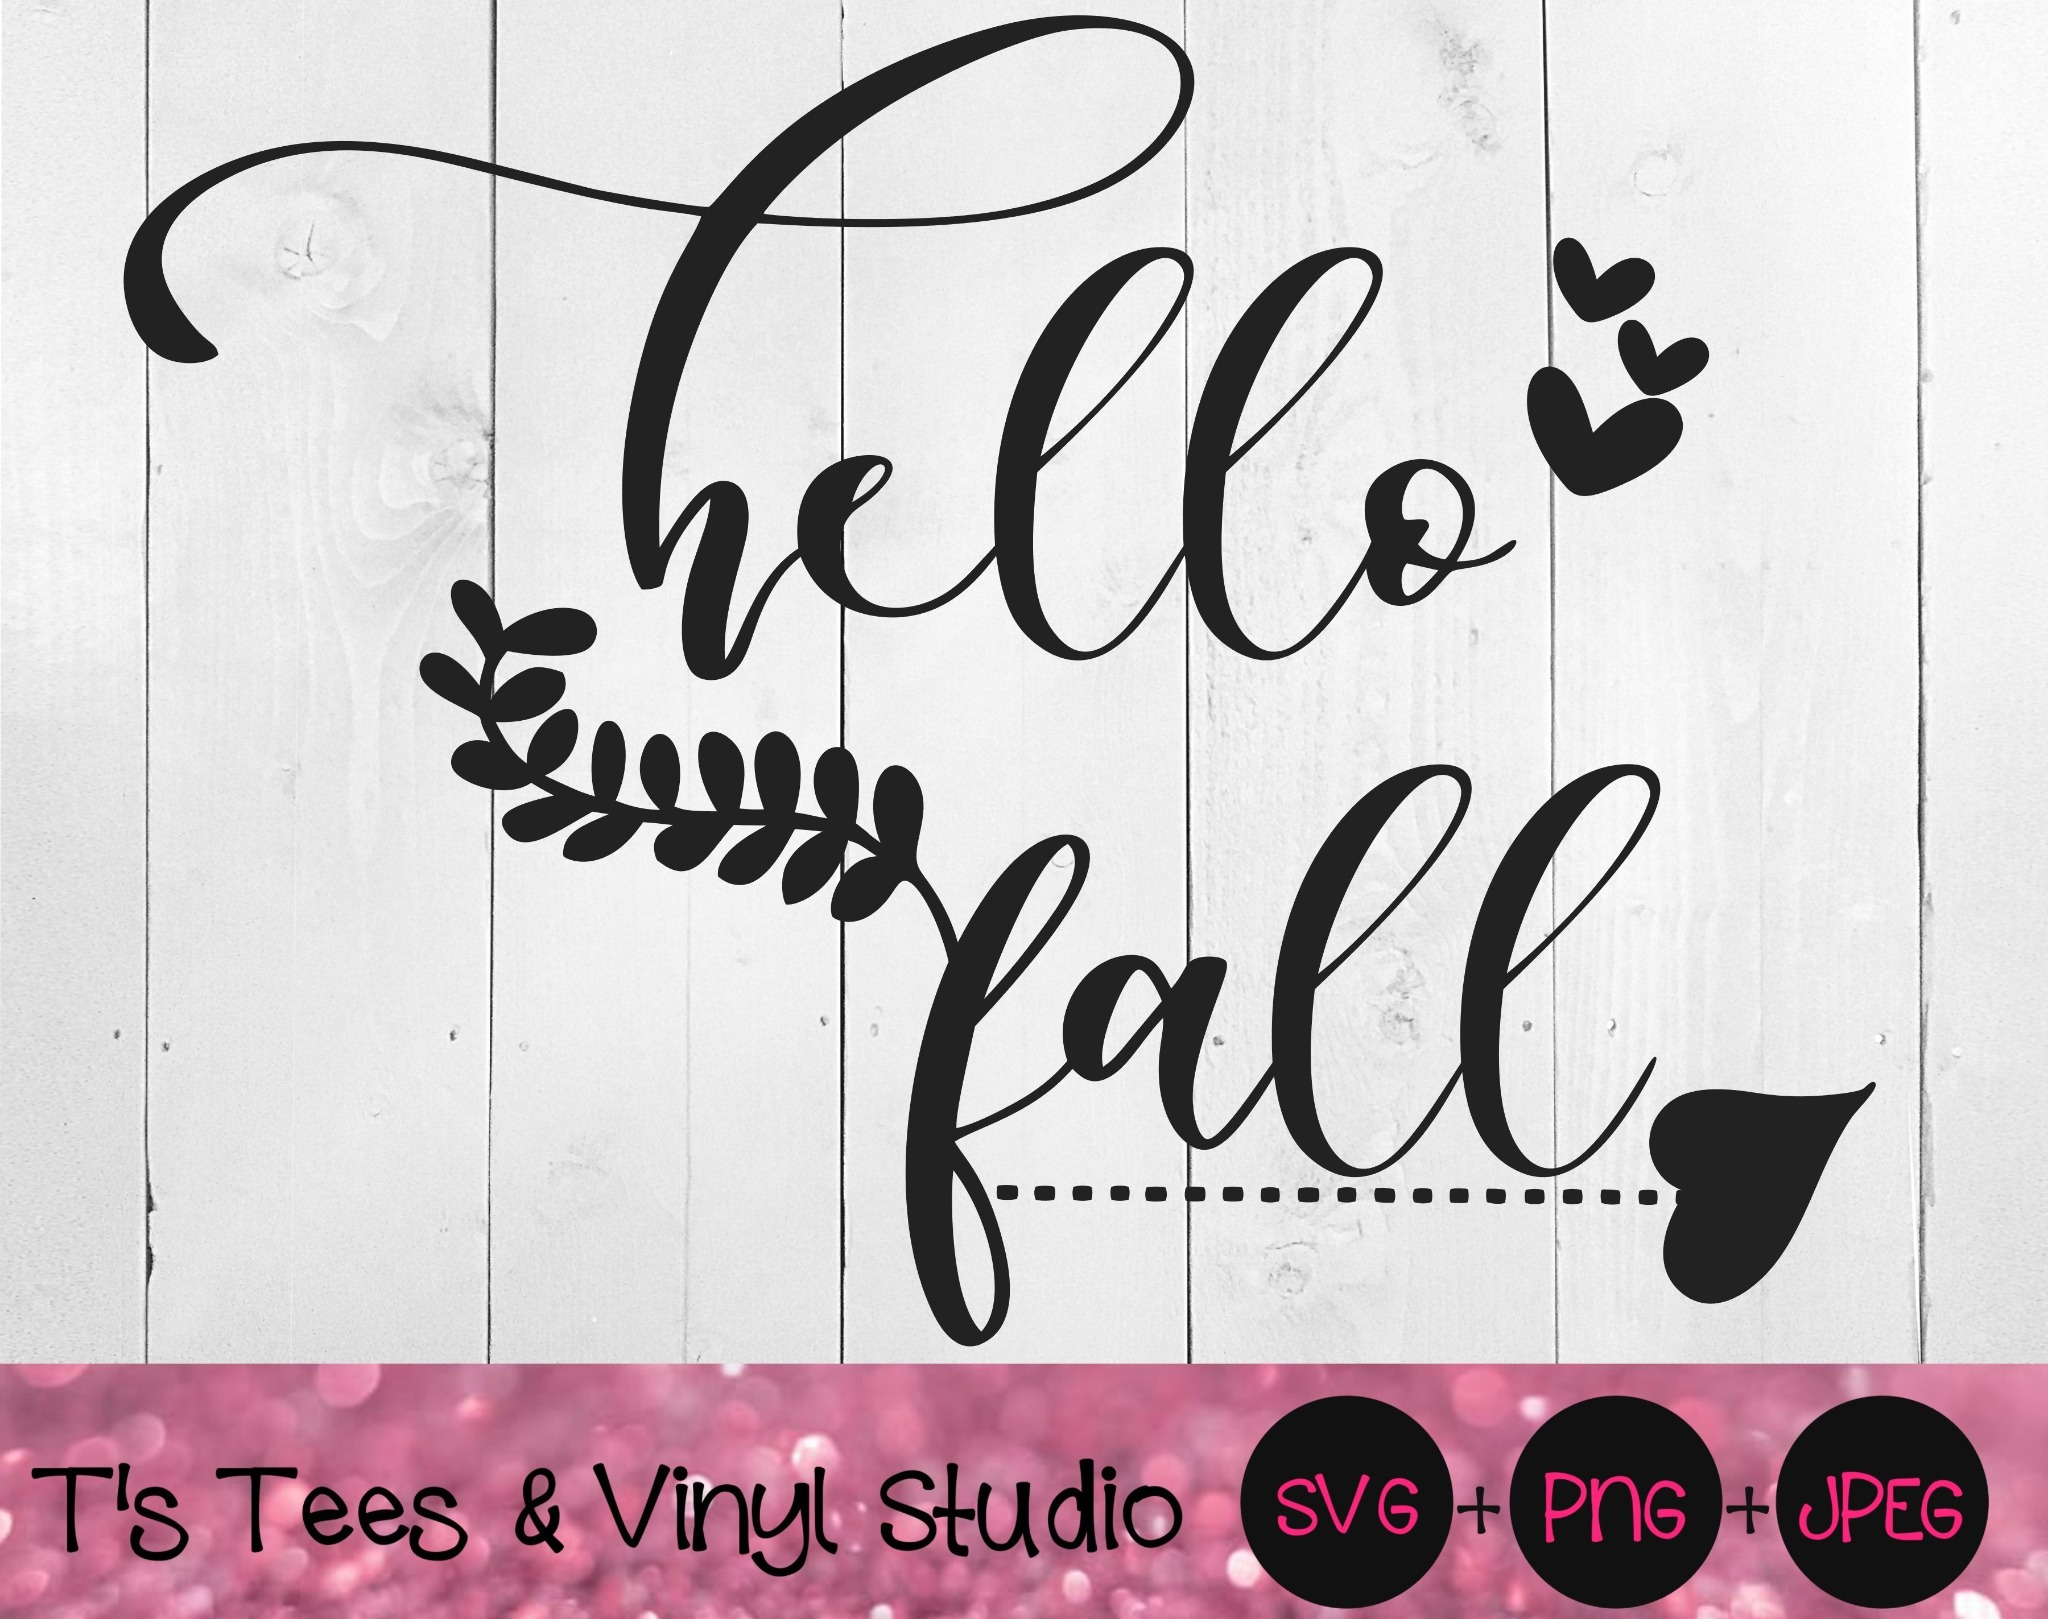 Hello Fall Svg, Autumn Svg, Falling Leaves Svg, Season Svg, Hello Fall Png, Autumn Png, Falling